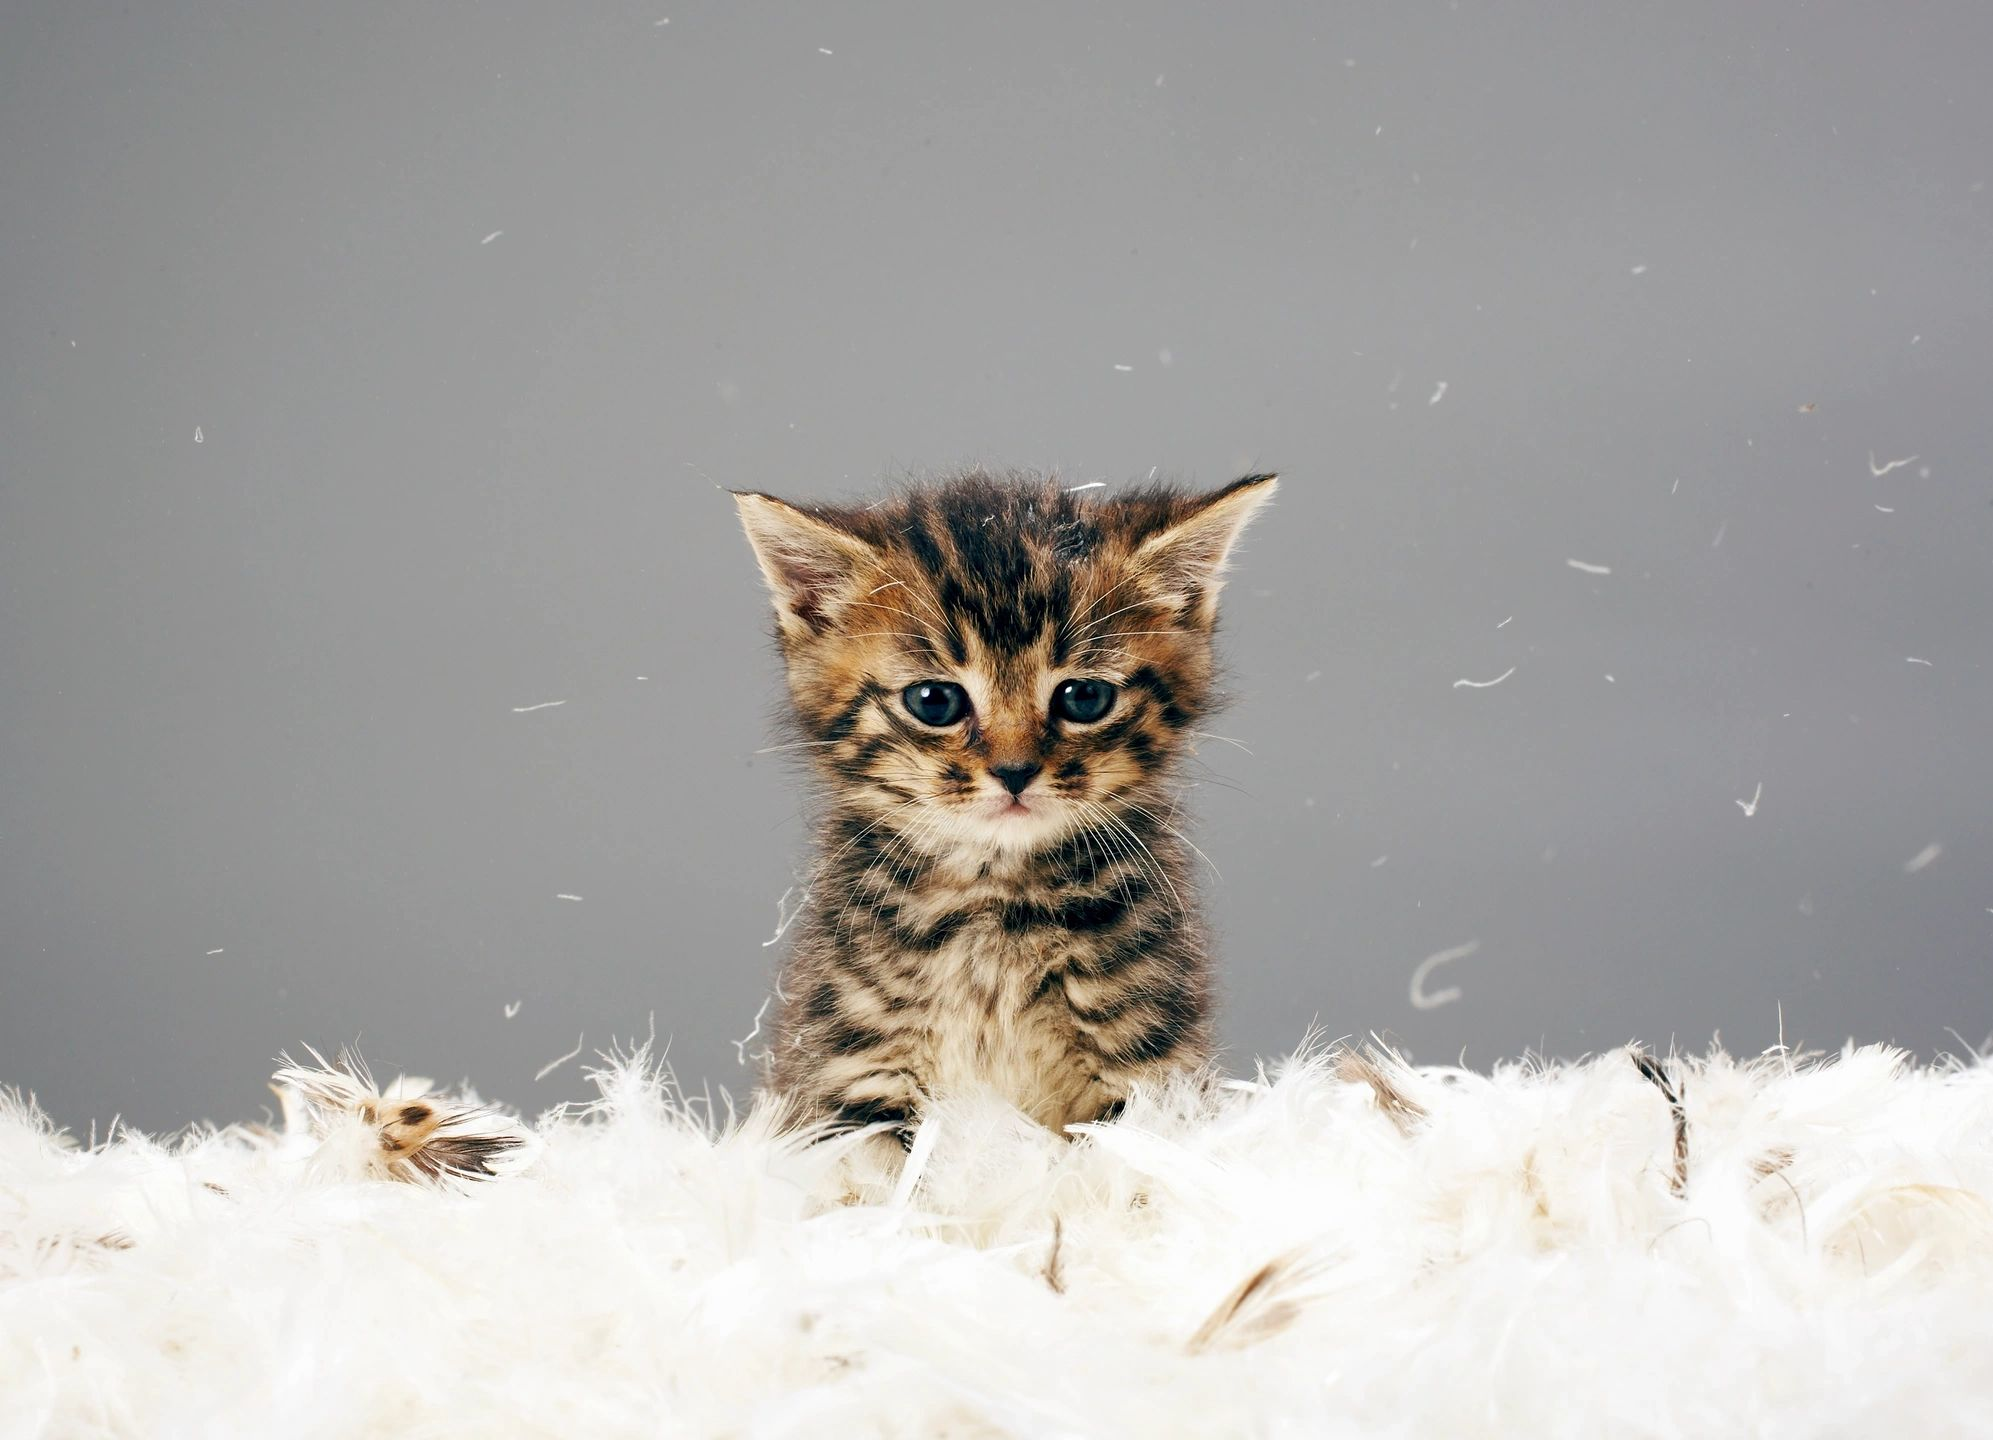 3 Key Things to Consider When Getting a Cat for Your Kids